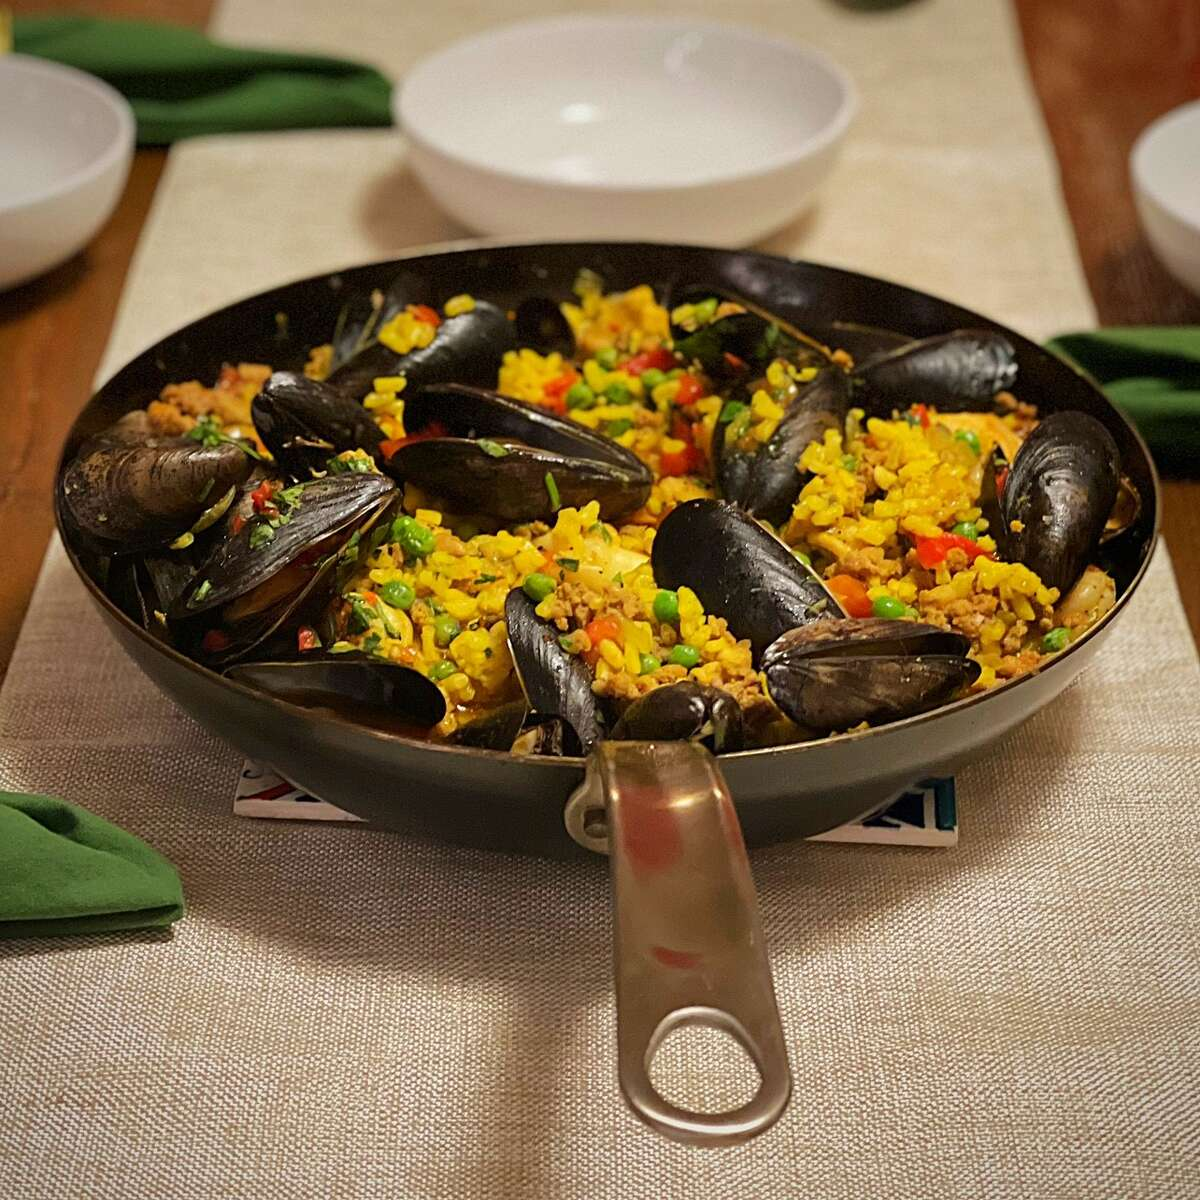 The finished paella Valenciana on the table.